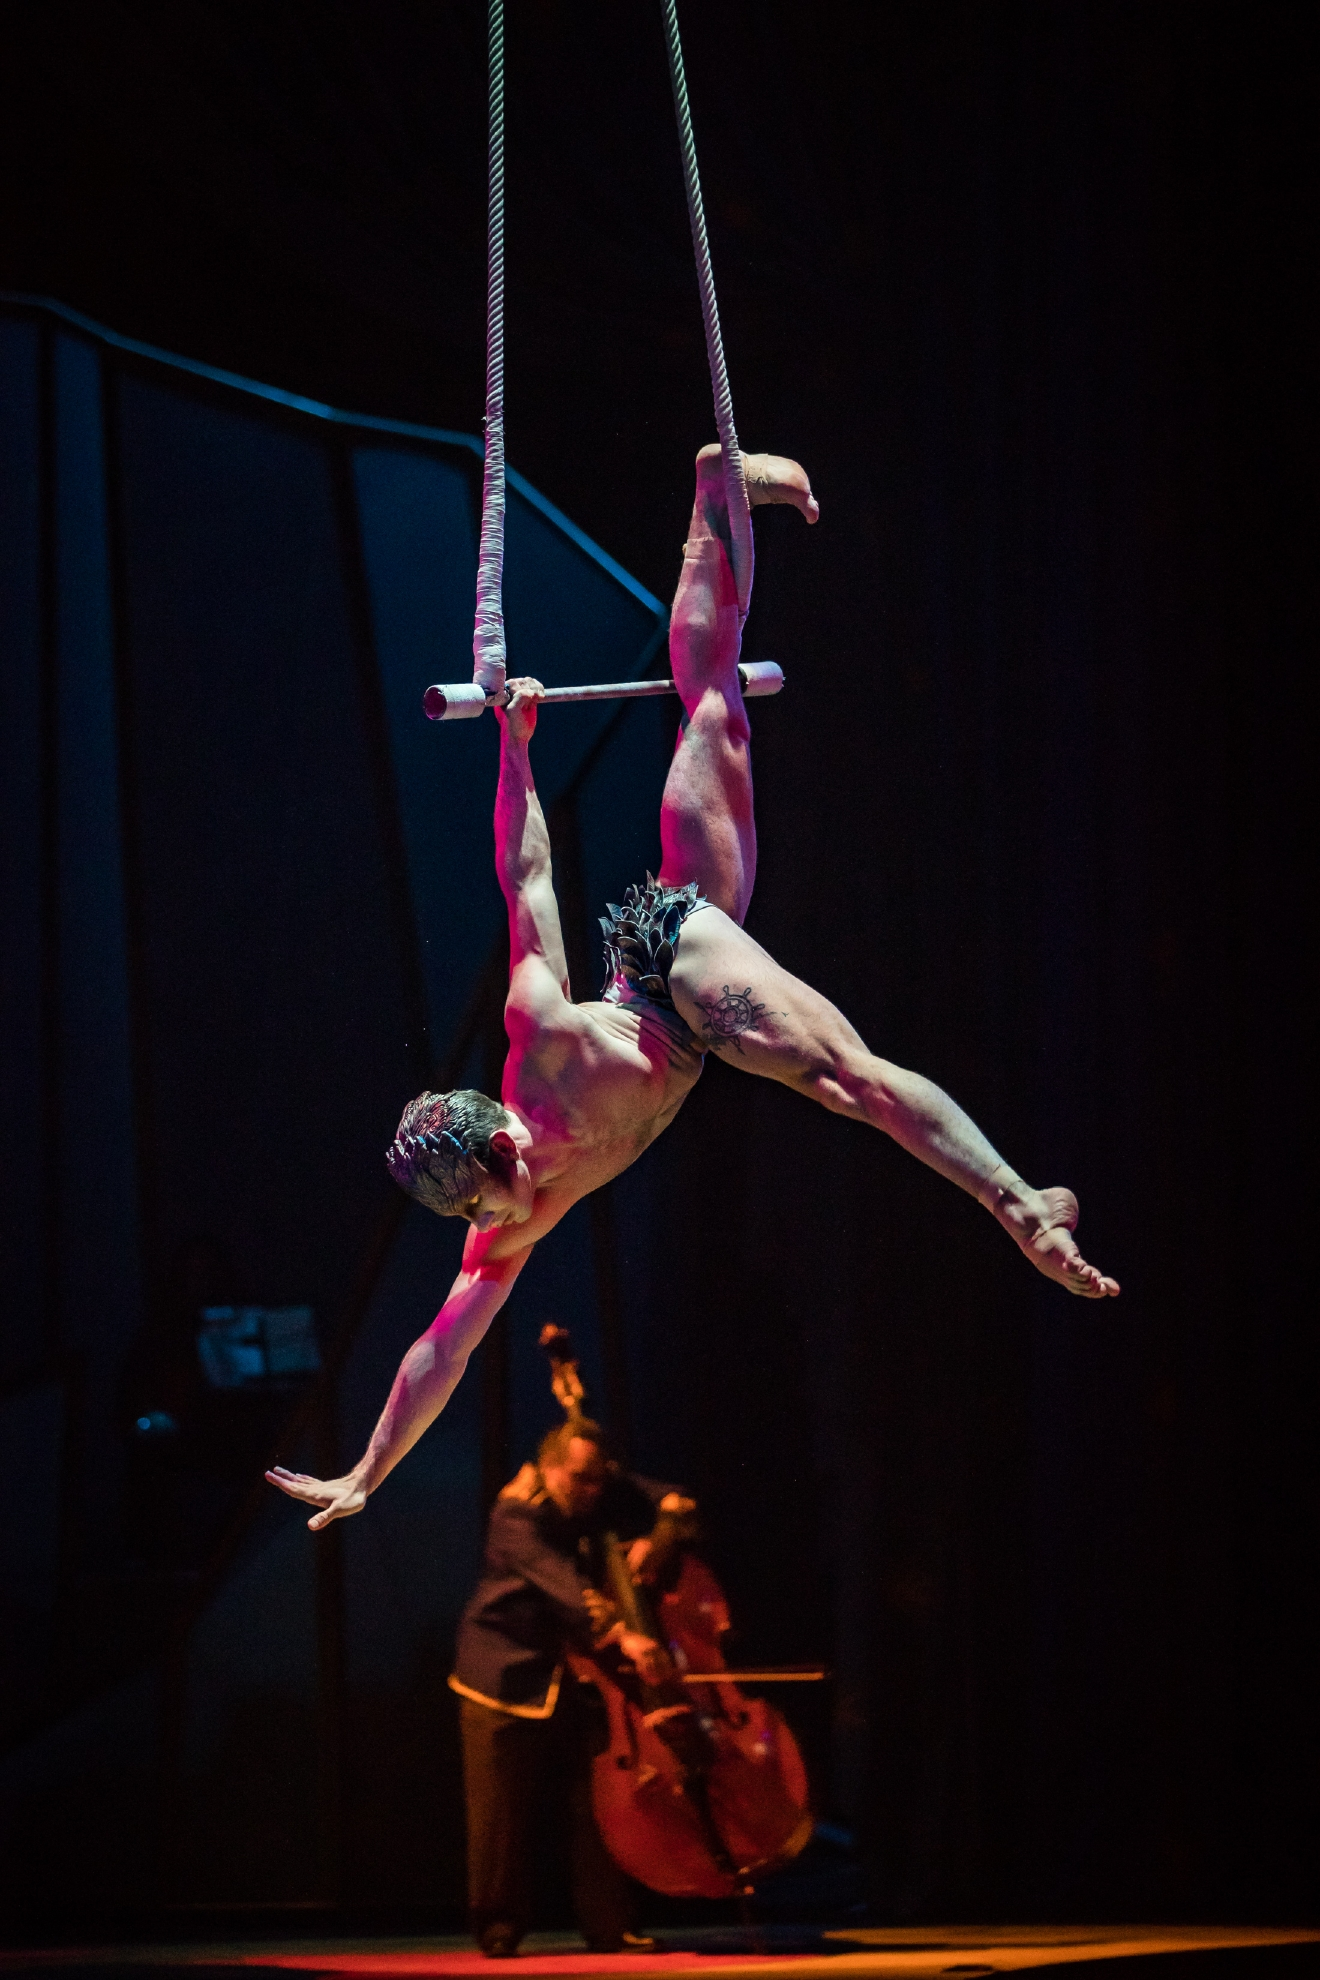 One Night for One Drop  2017 Performer Dazzles Guests with Stunning Aerial Routine, March 3, 2017. (Photo courtesy of Erik Kabik/ErikKabik.com)